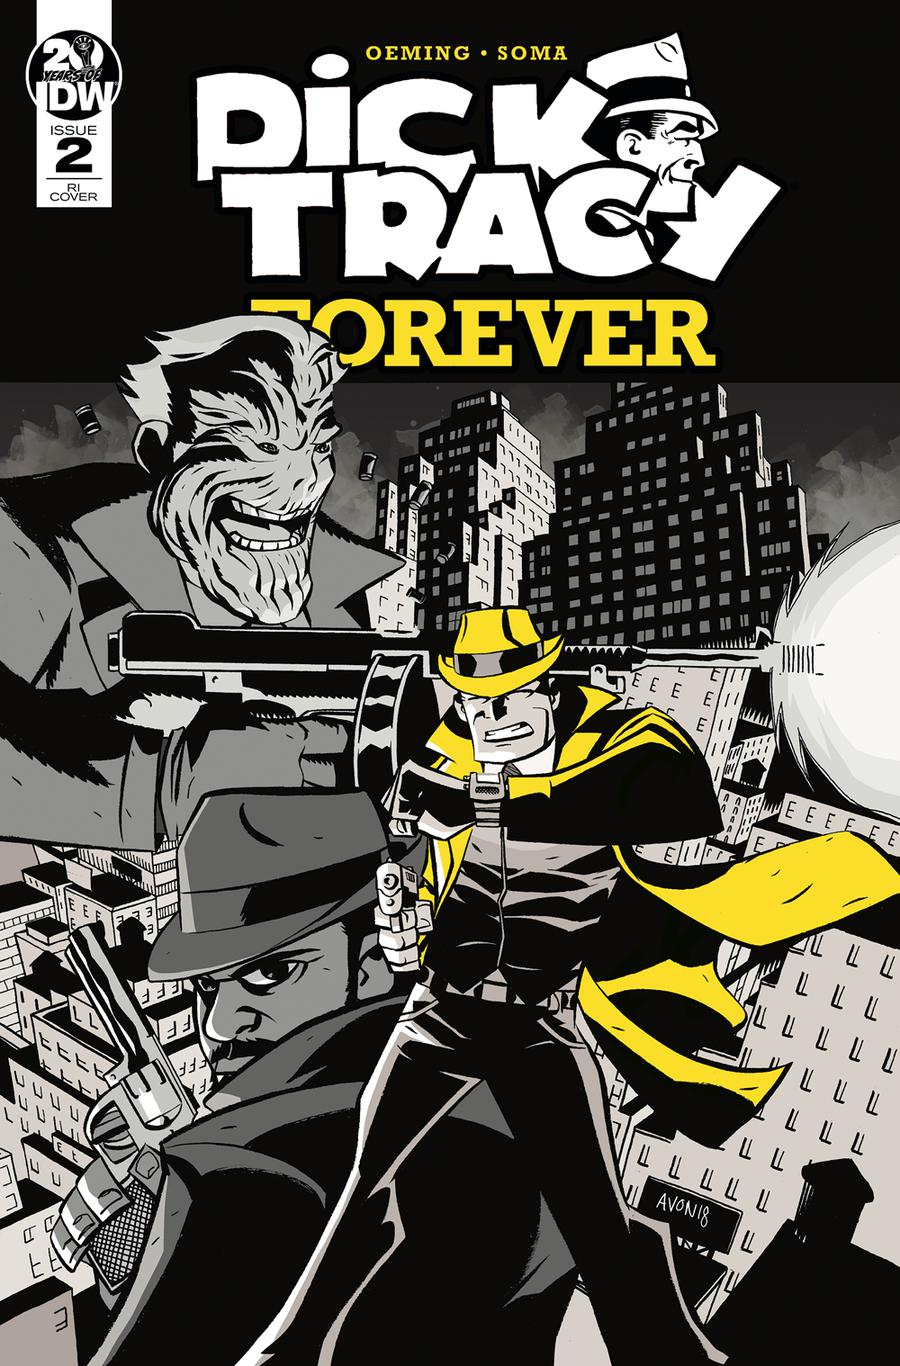 Dick Tracy Forever #2 Cover B Incentive Michael Avon Oeming Variant Cover